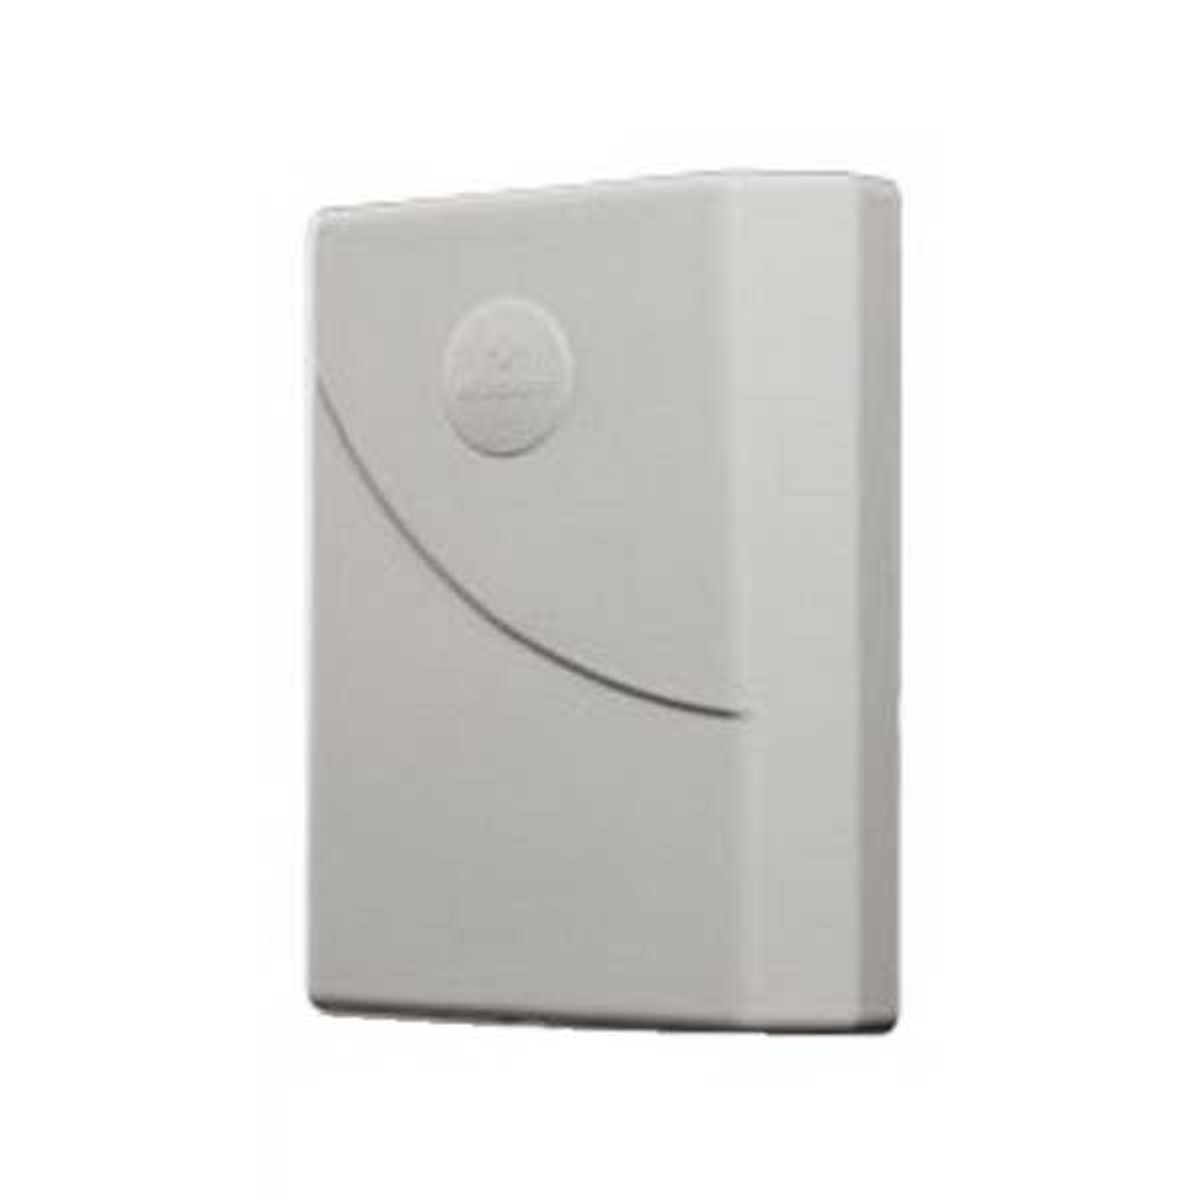 Wilson 304451 Ceiling Mount Panel Antenna 700-2700 MHz 50 Ohms Multi Band, side angle view